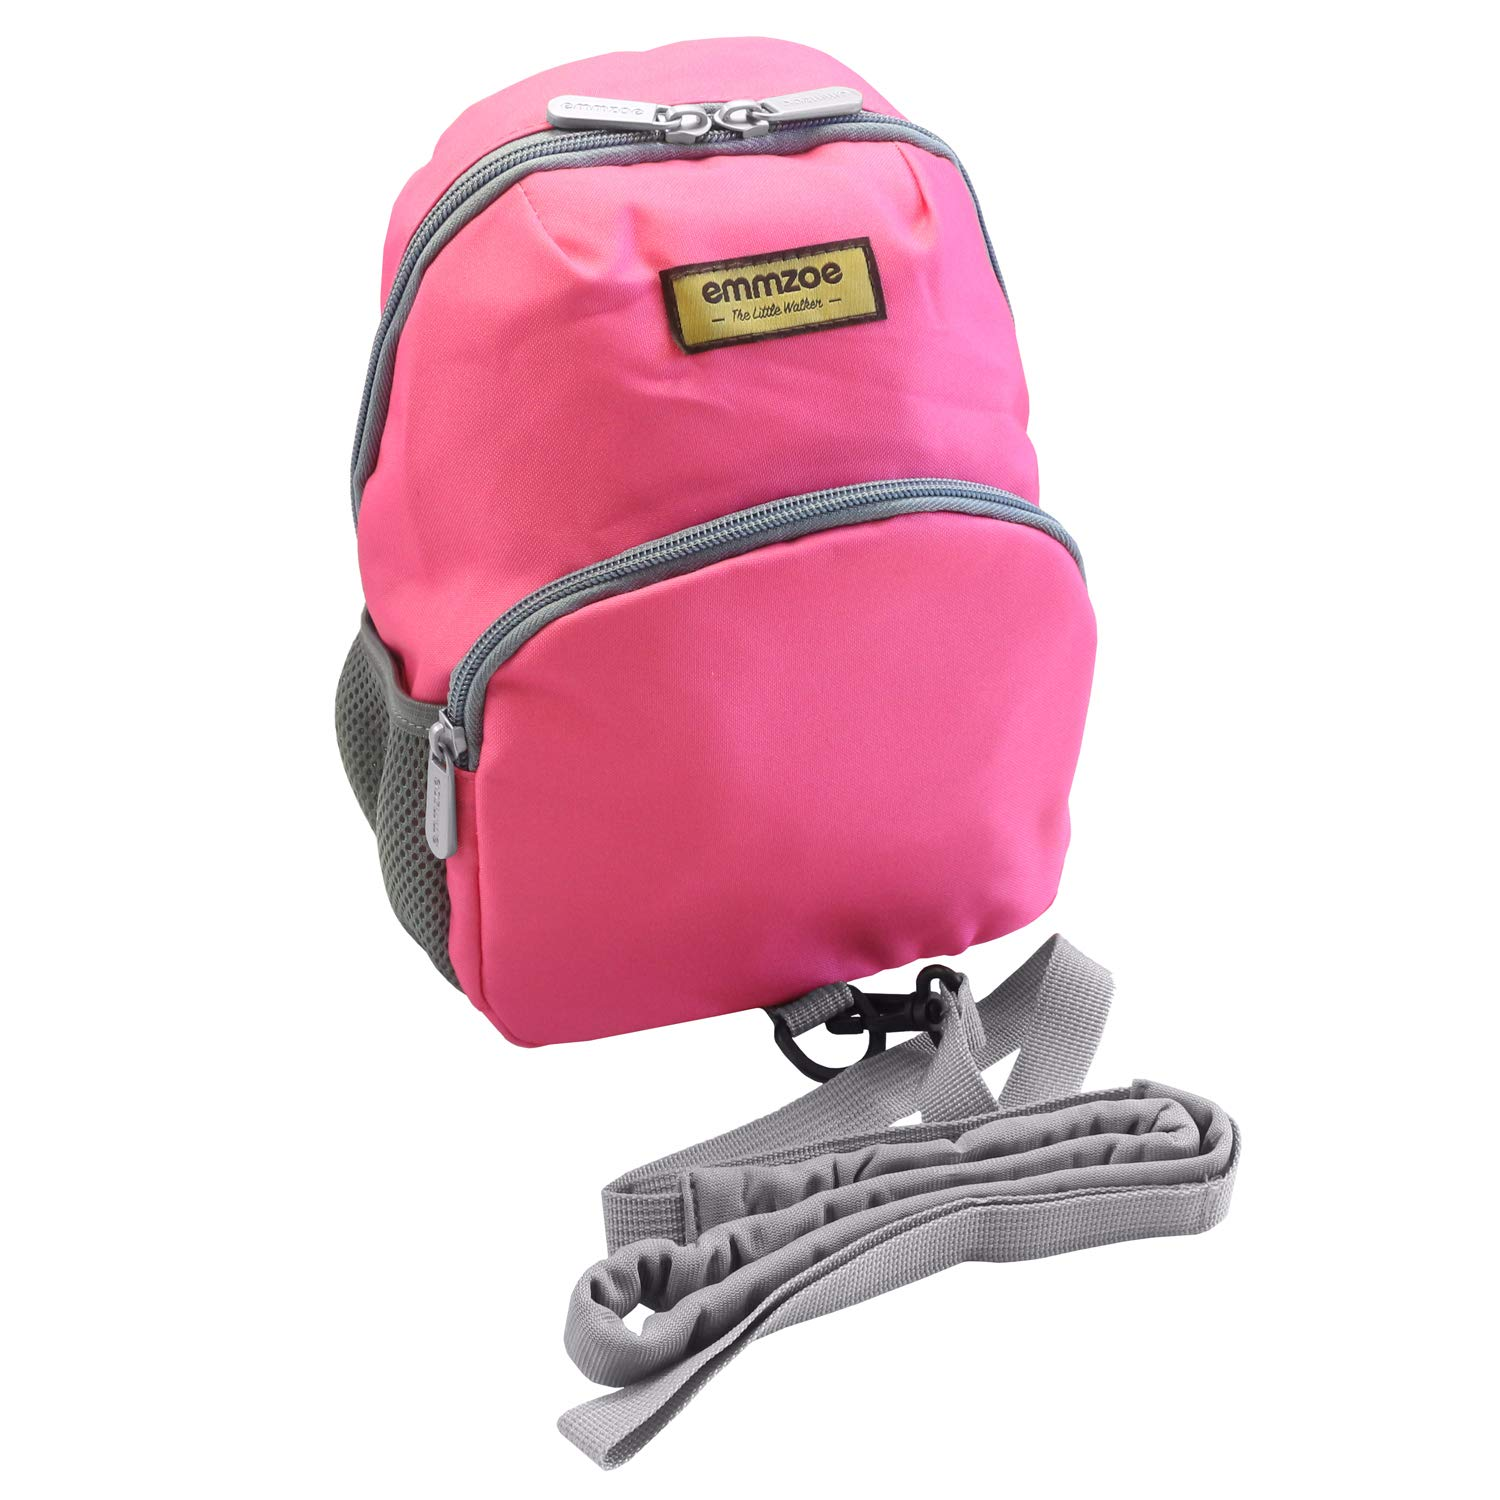 Emmzoe Little Walker Neon Toddler Backpack with Safety Harness Leash - Lightweight Fits Snacks, Food, Toys (Neon Pink)